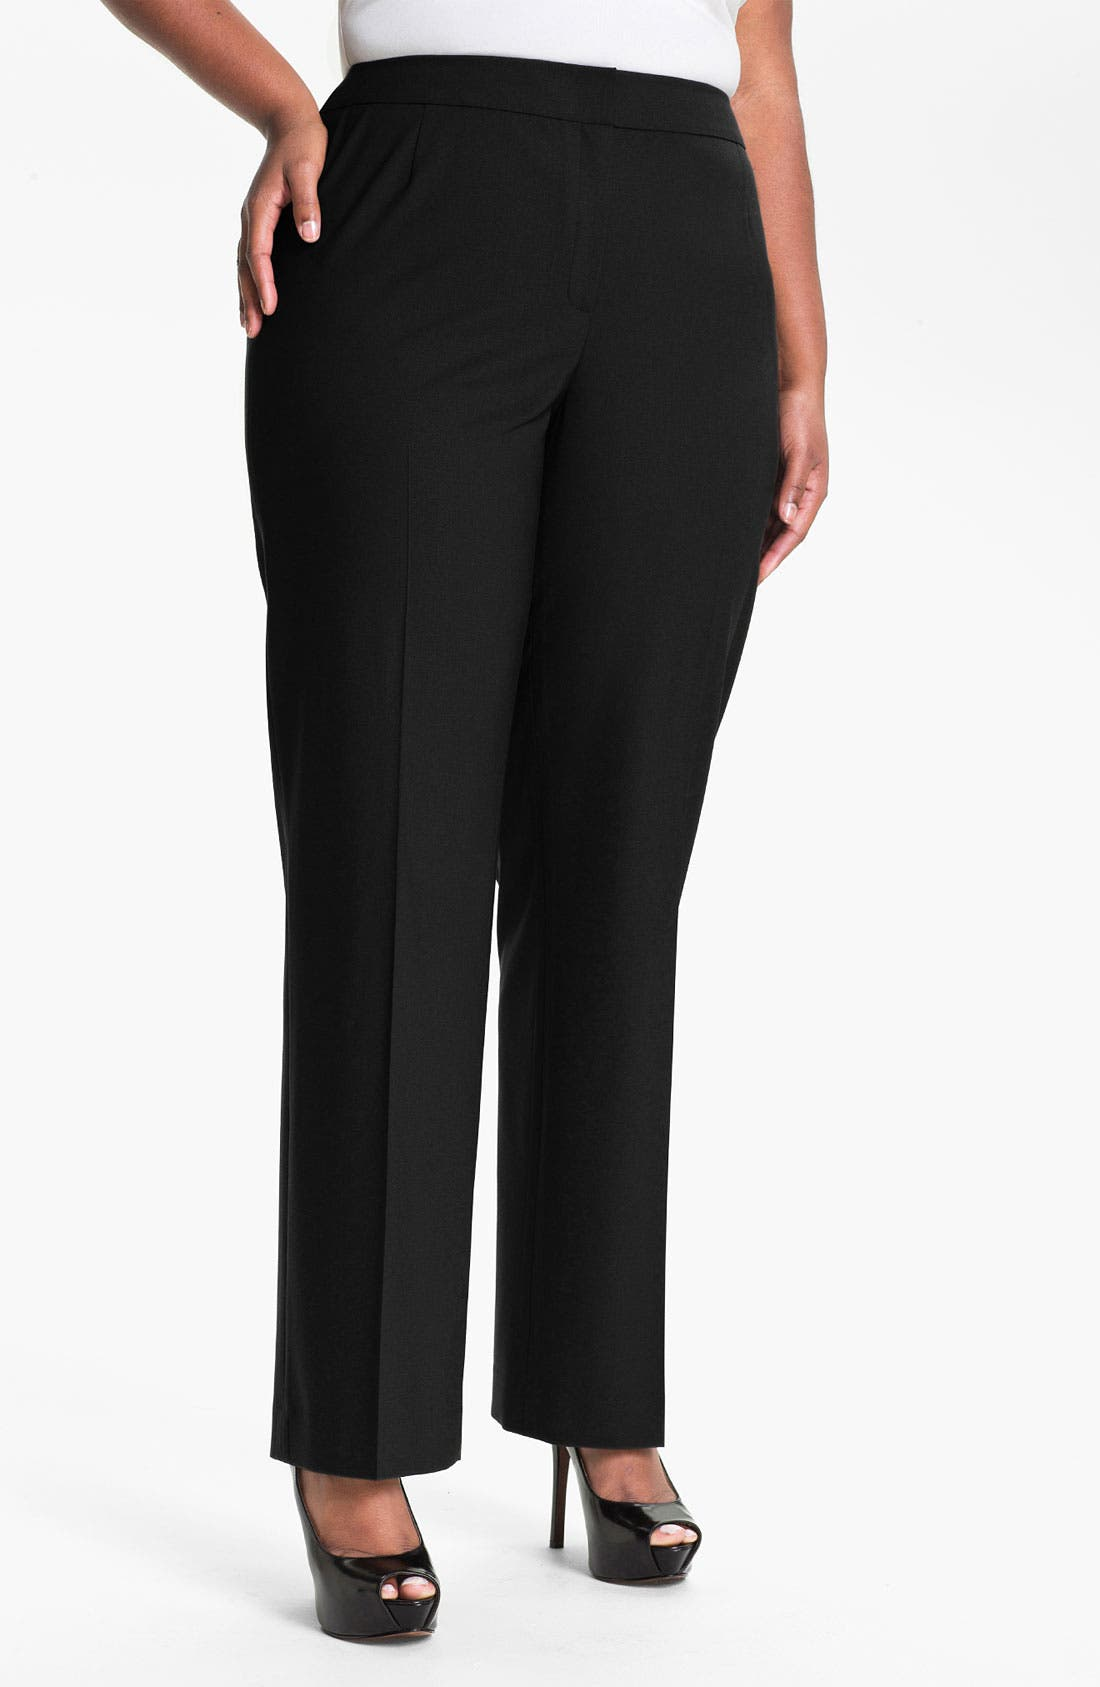 Main Image - Lafayette 148 New York 'Menswear' Trousers (Plus Size)